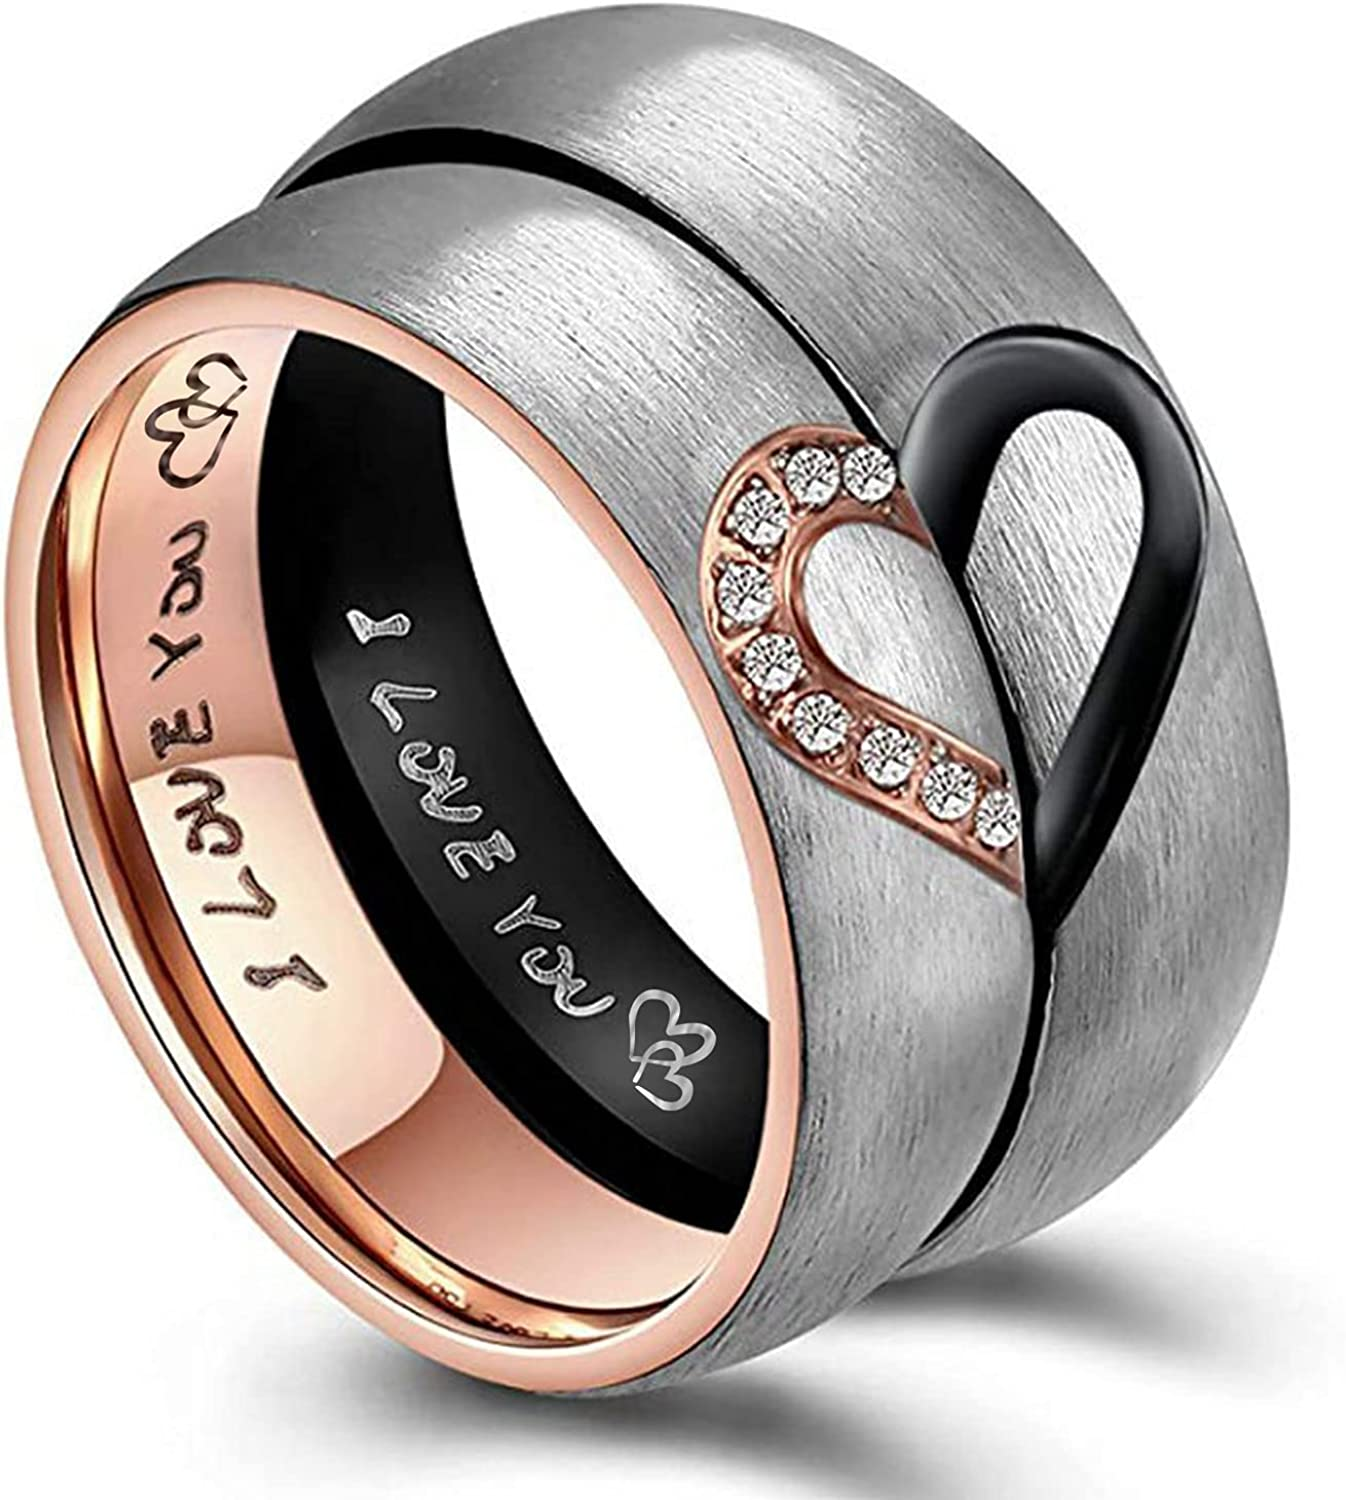 MAXVIN Matching Promise Rings for Couples Custom Engraving Wedding Bands Sets for Him and Her Heart Rings Stainless Steel 6mm Comfort Fit